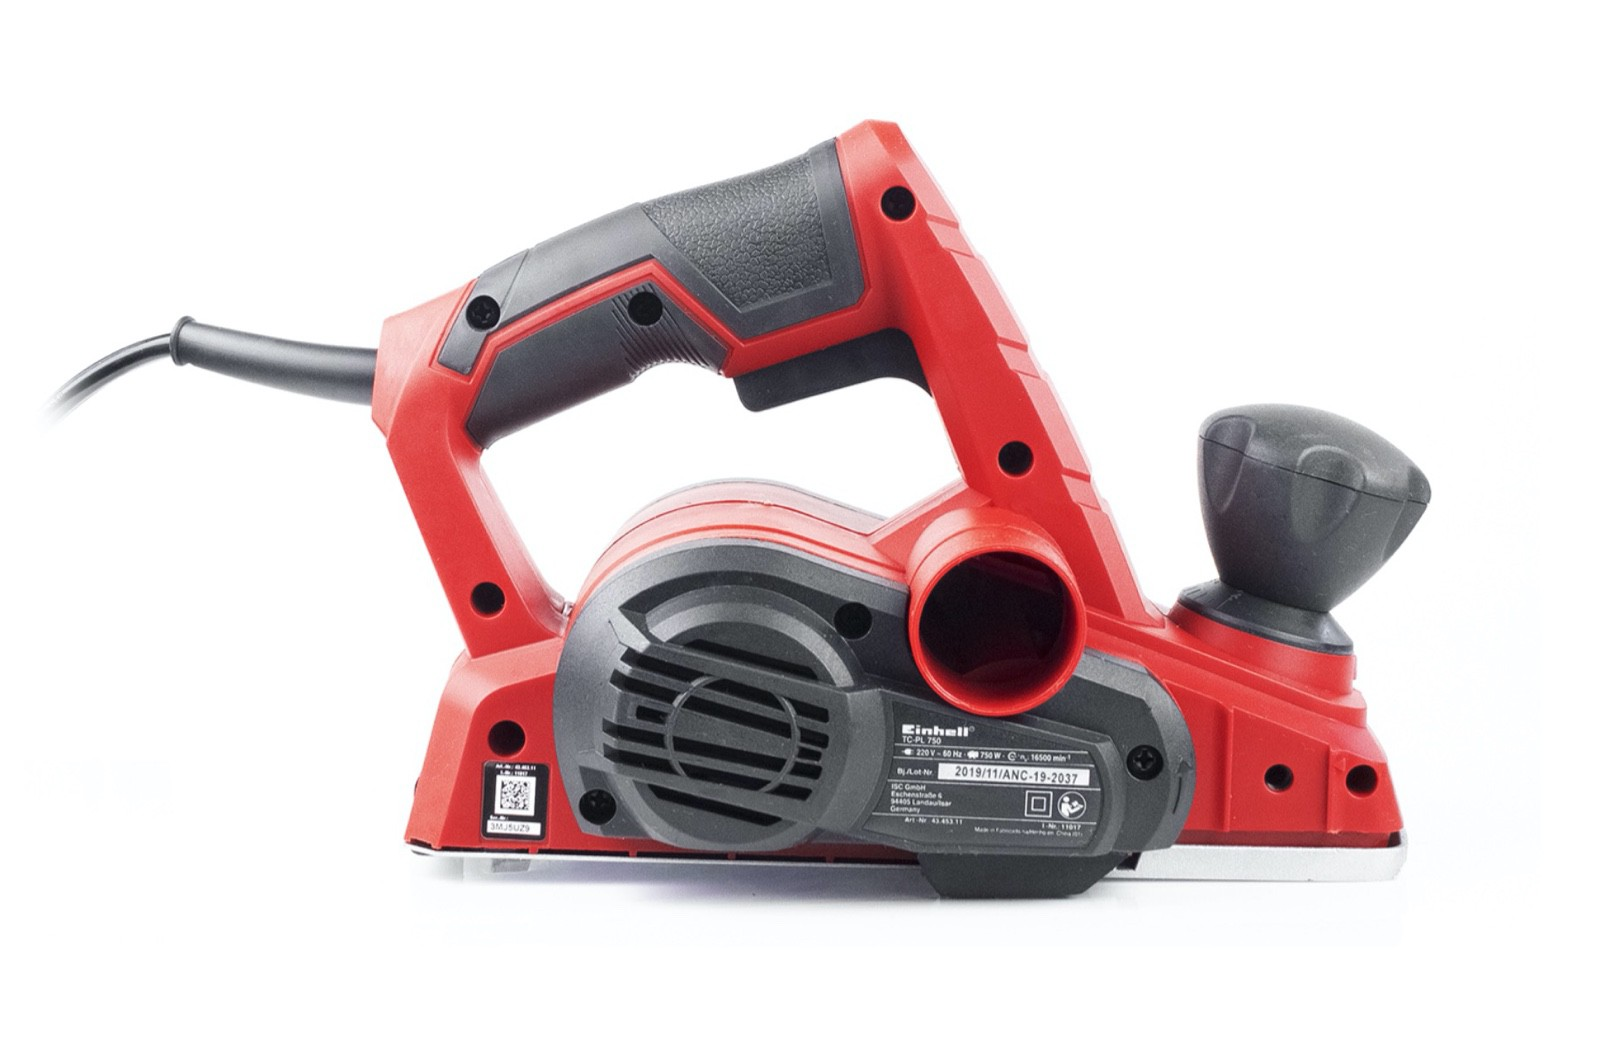 Plaina Eletrica Manual EINHELL 750W TC-PL 750 82mm